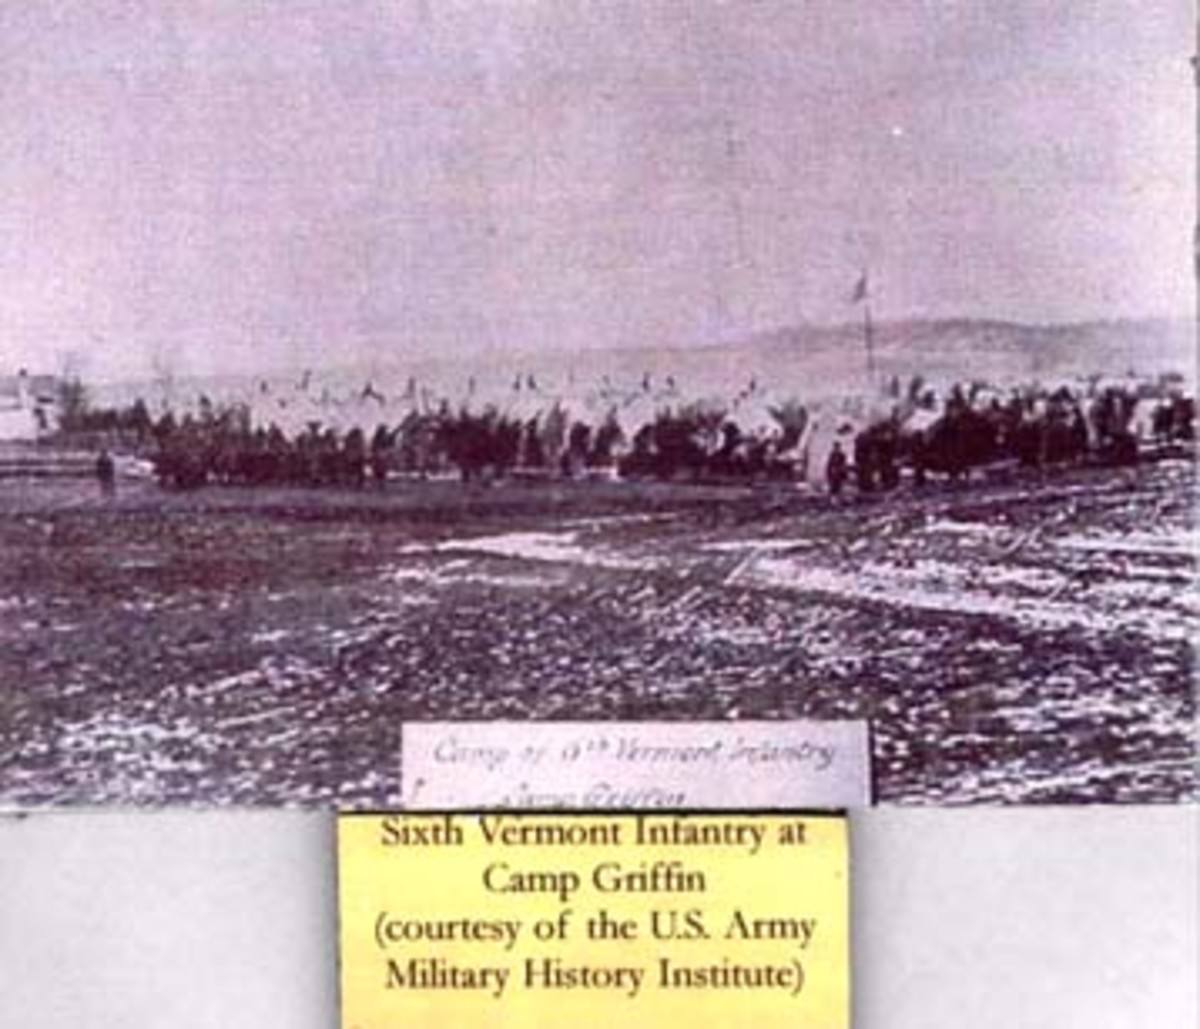 The 6th Vermont Volunteers at Camp Griffin